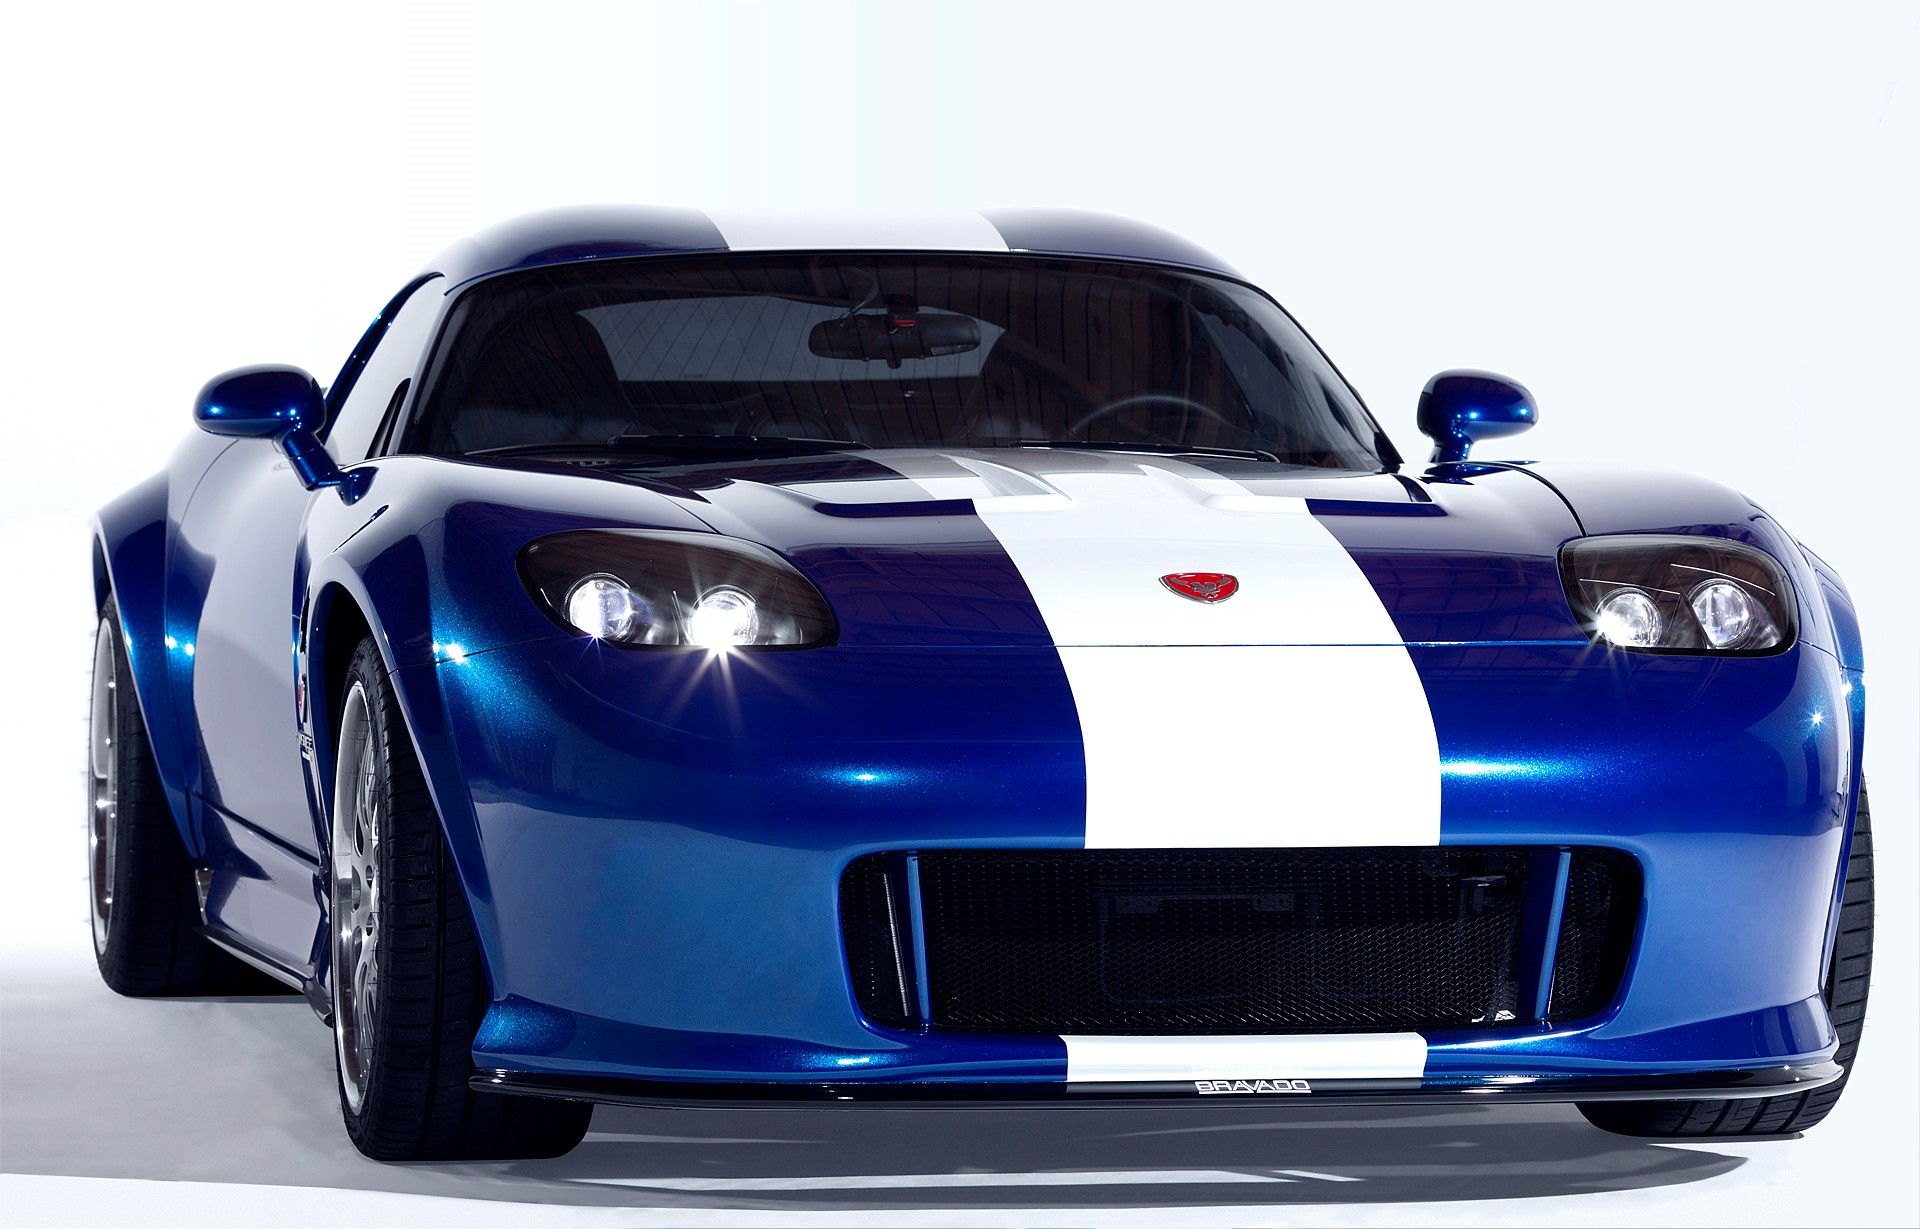 Viper Based Bravado Banshee From Grand Theft Auto Up For